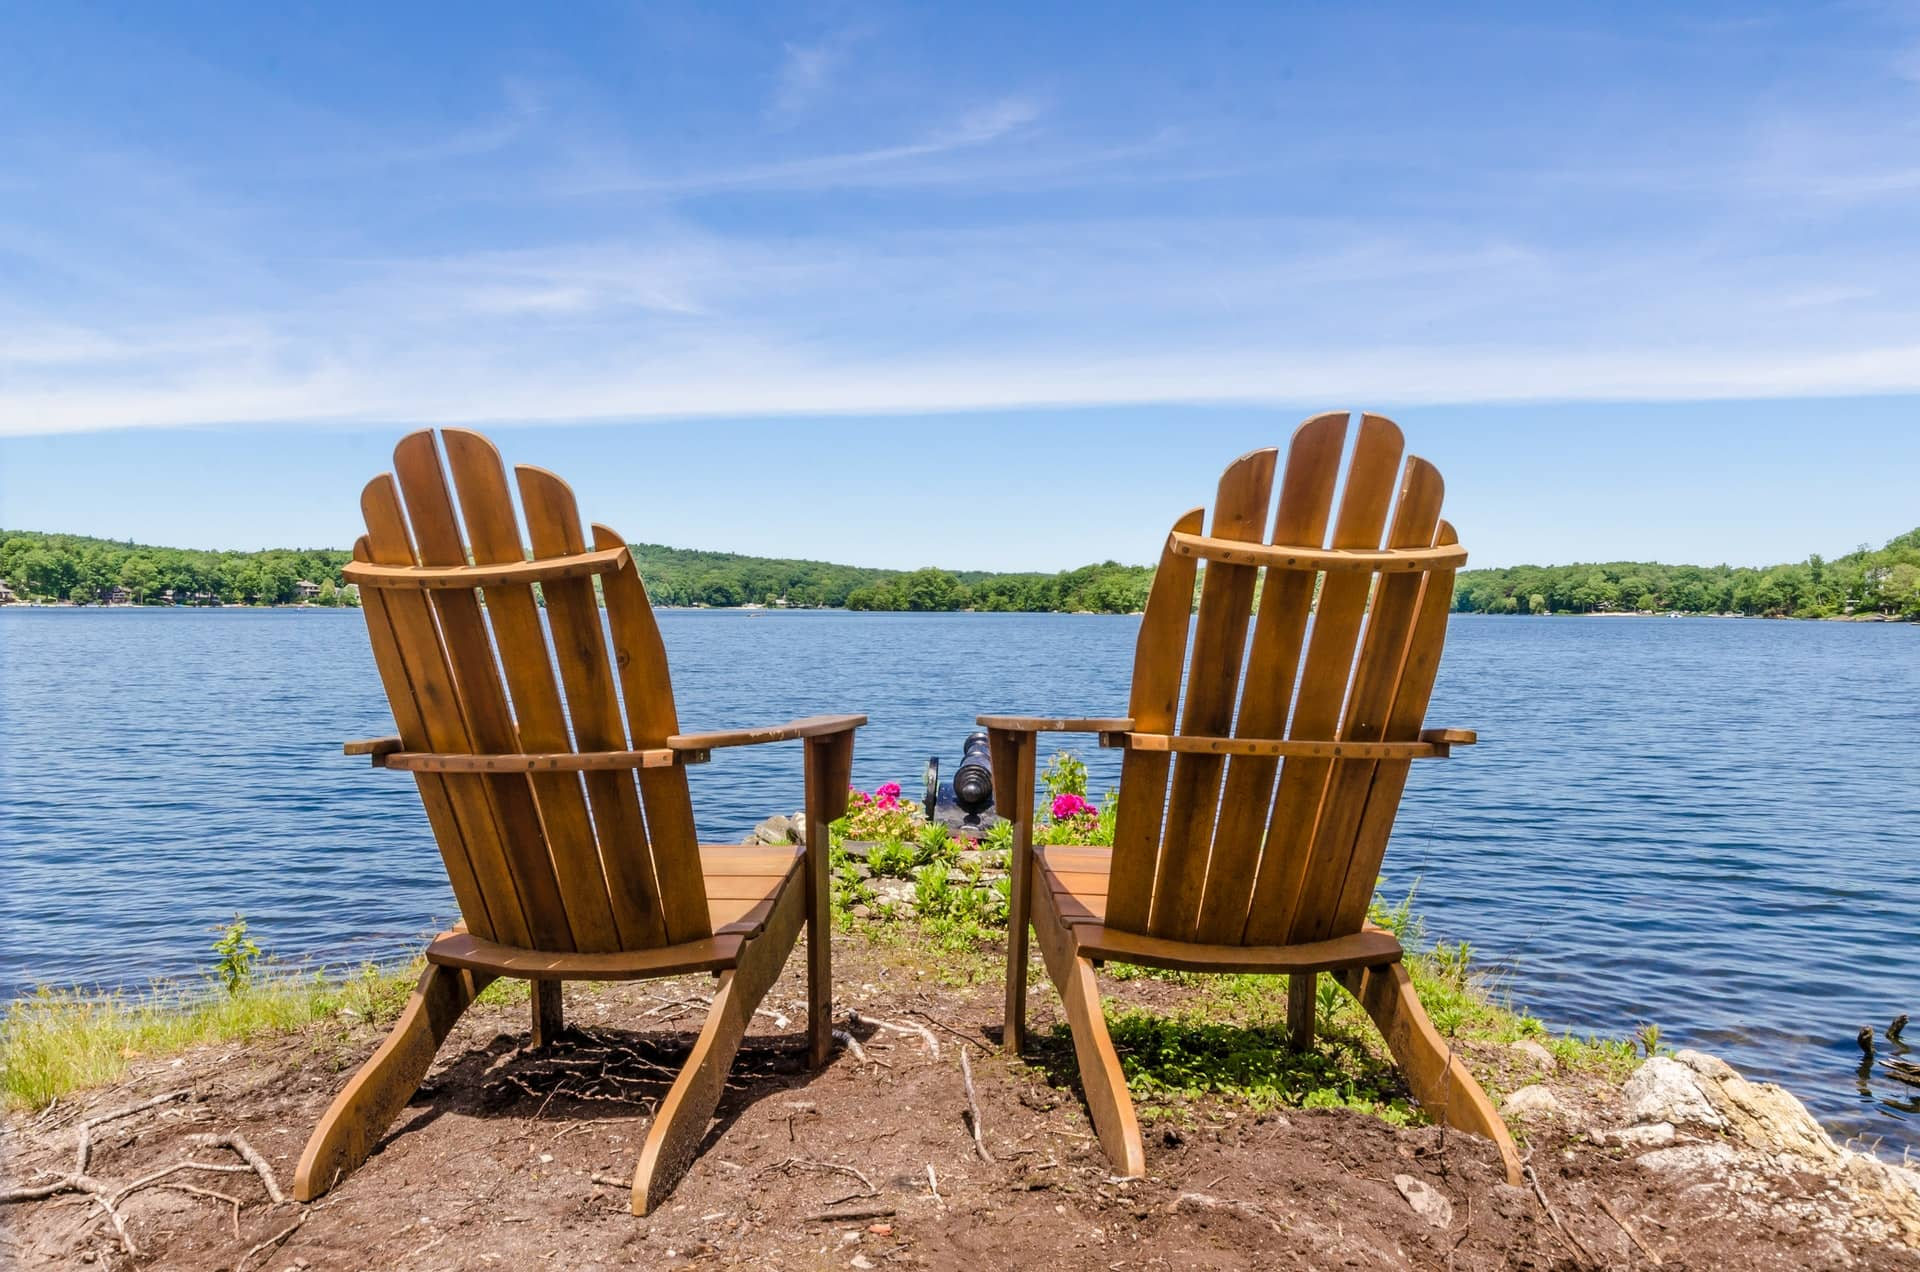 Two wooden outdoor adirondack chairs from back